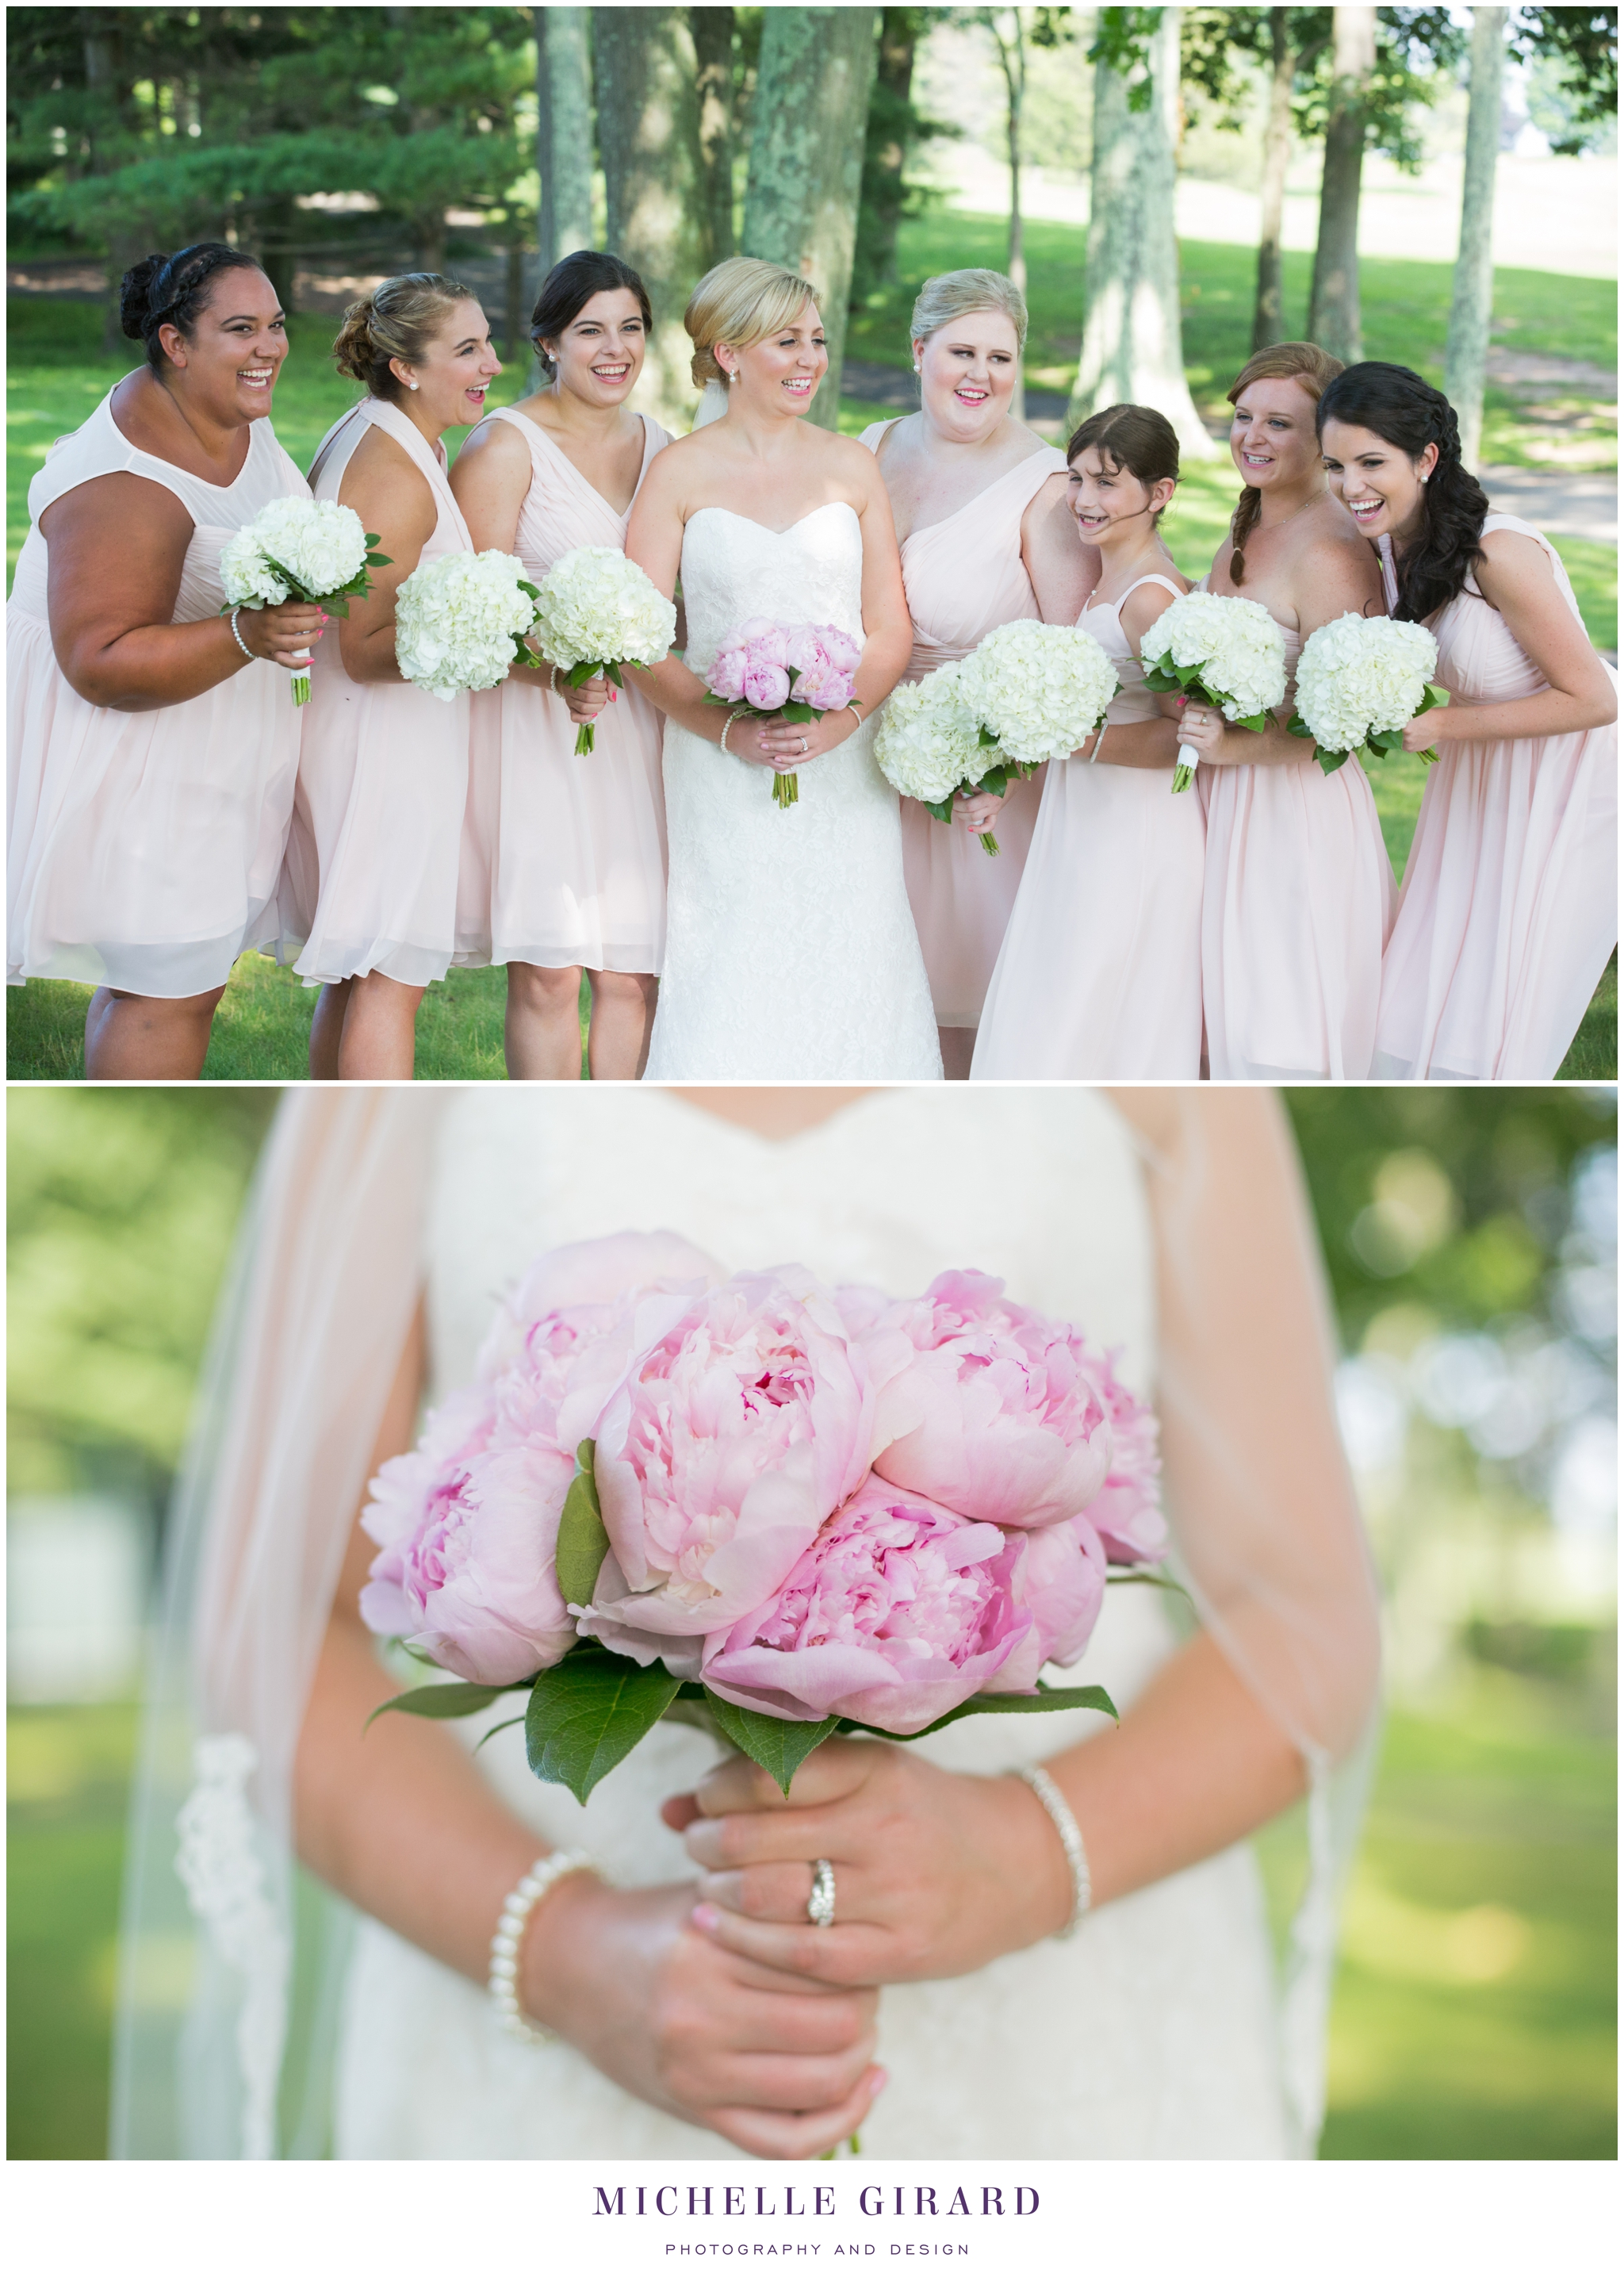 FarmsCountryClub_SummerWedding_MichelleGirardPhotography11.jpg